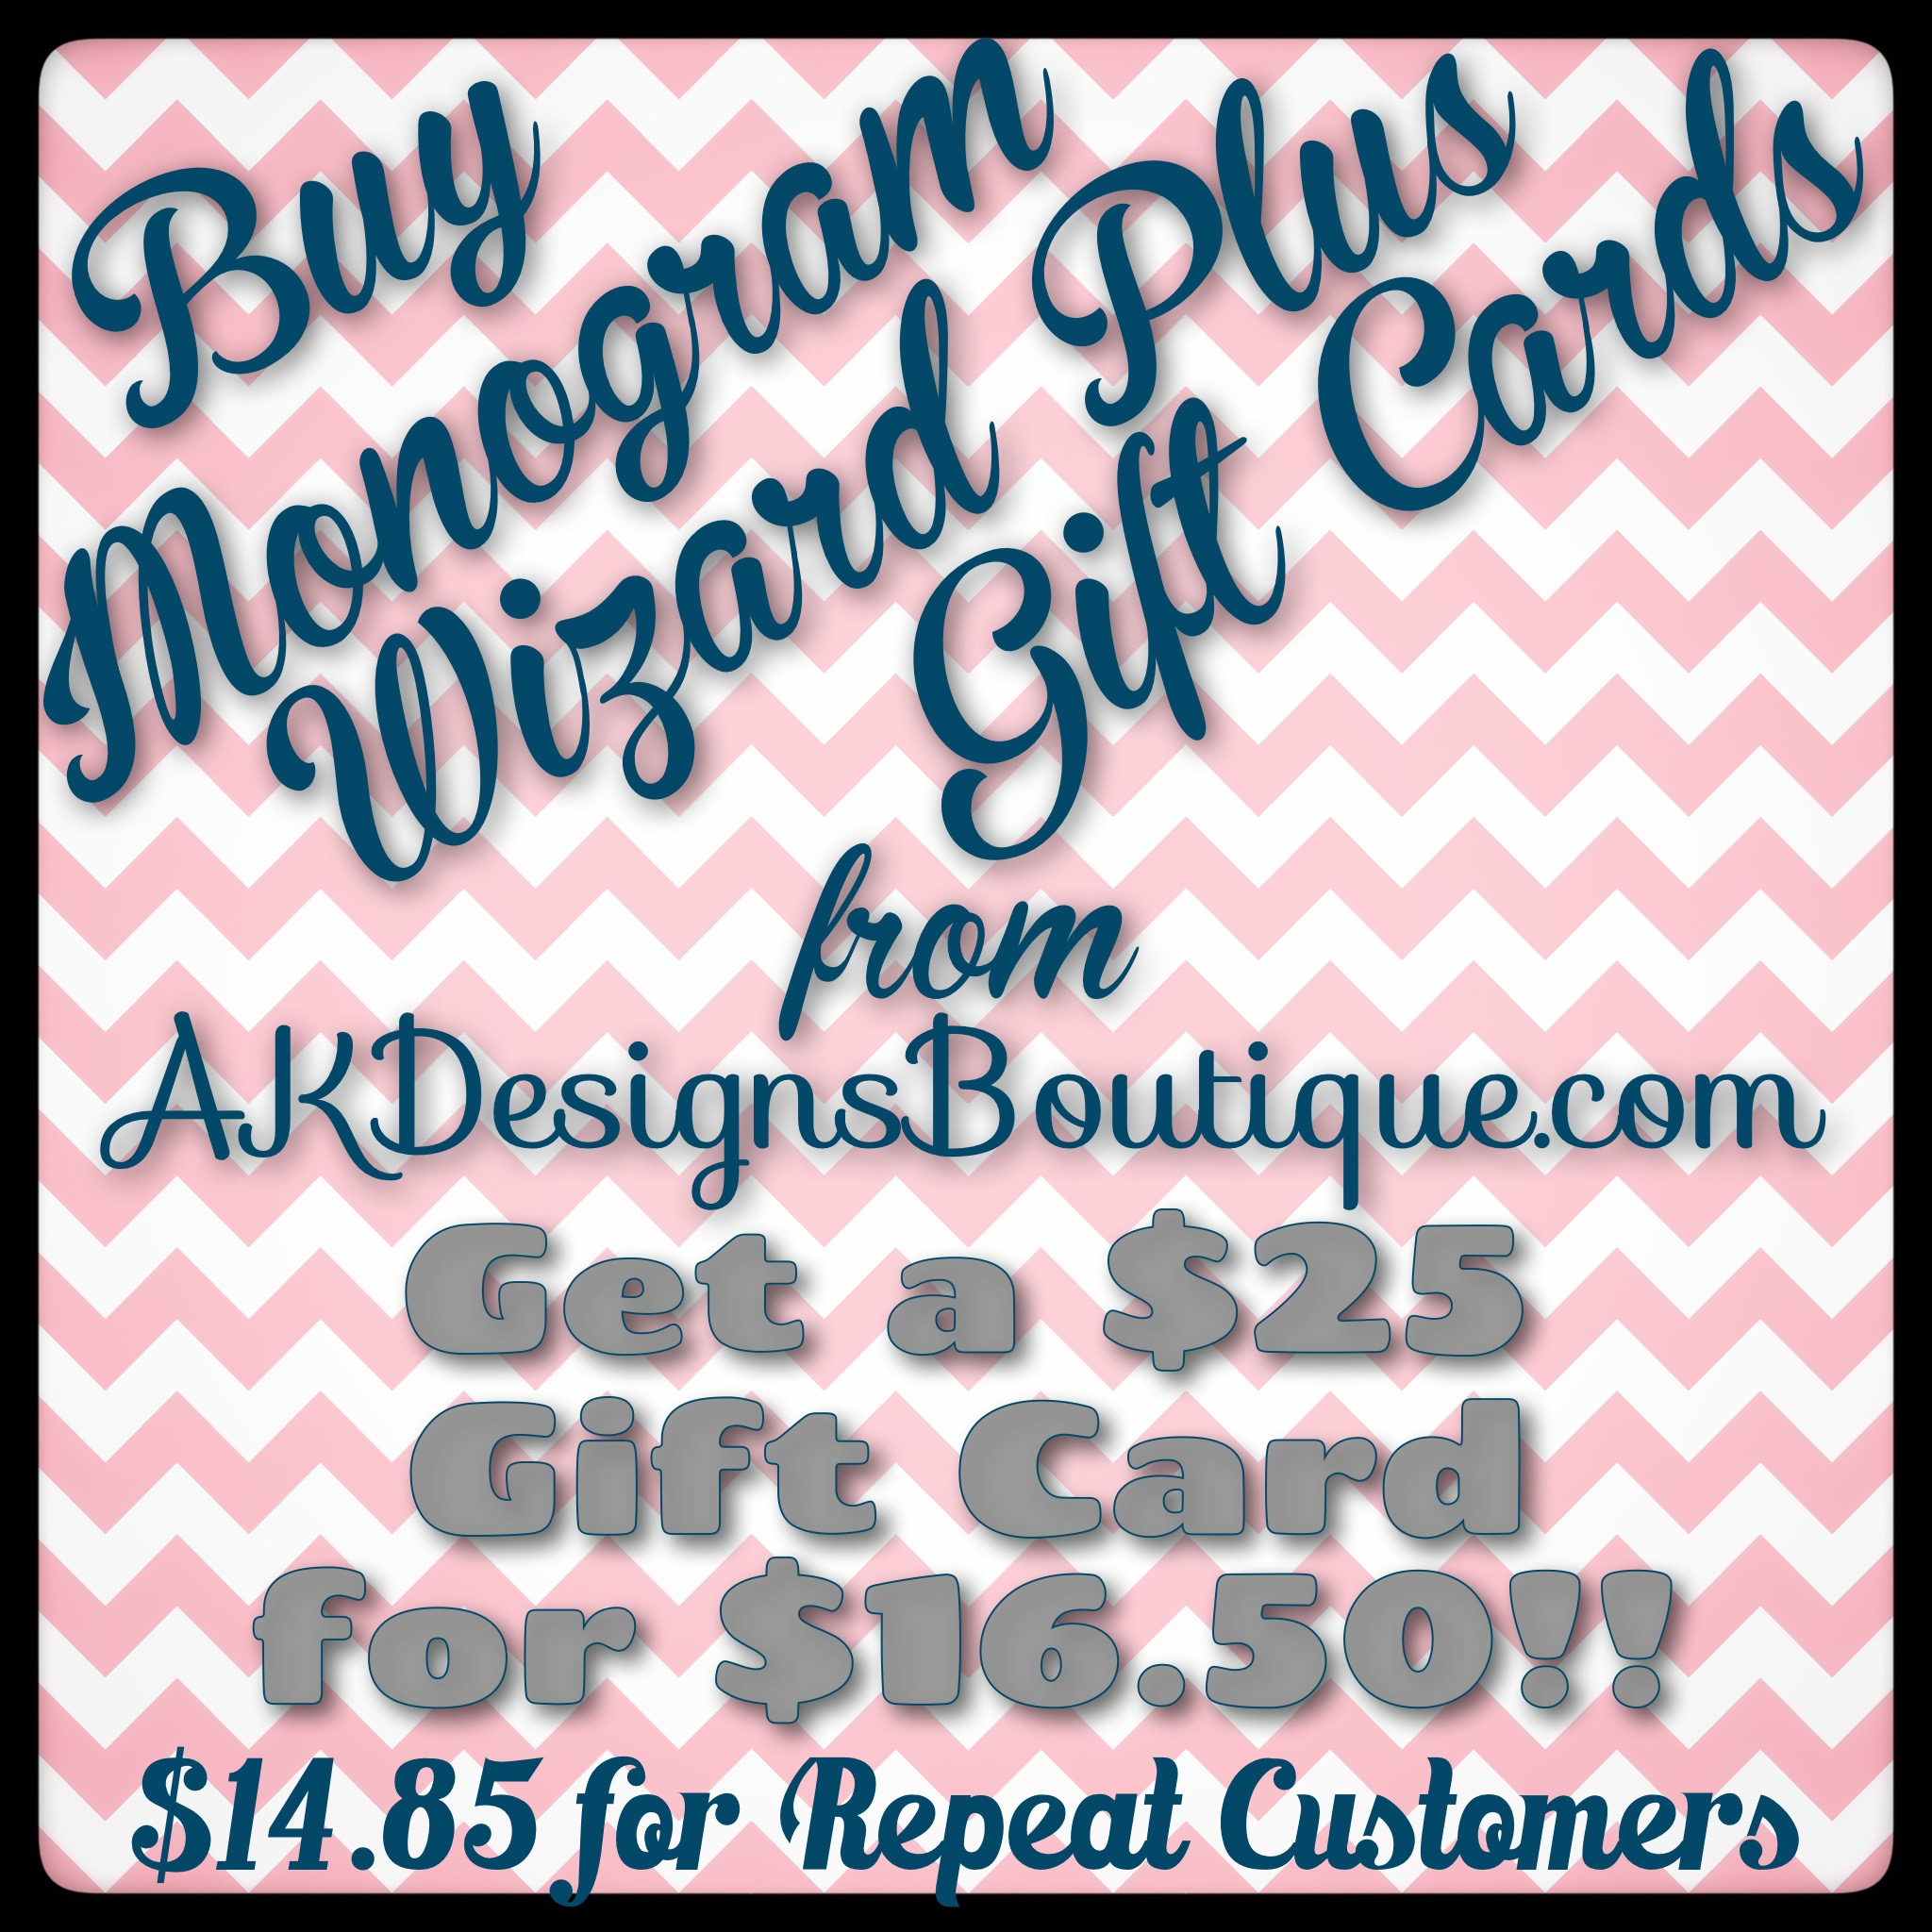 Gift Card for Monogram Wizard Plus Alphabets and Motifs at Needleheads.com